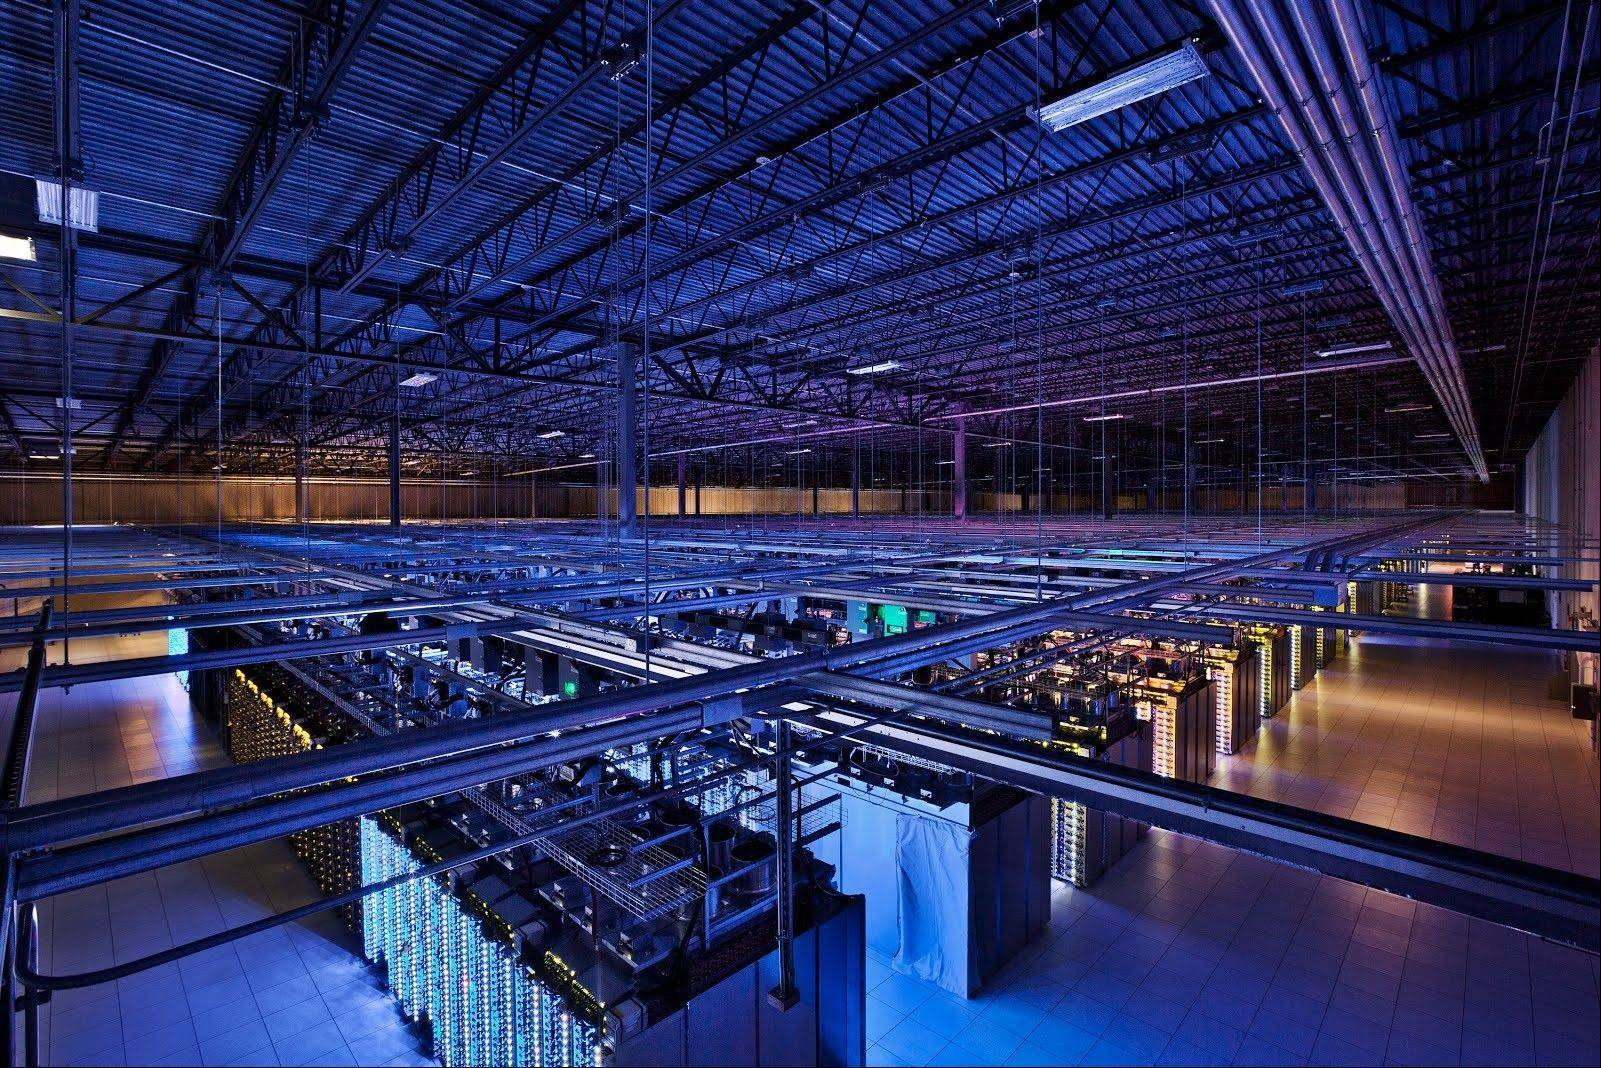 This is a Google data center in Hamina, Finland. The Washington Post reported Wednesday the National Security Agency secretly broke into the main communications links that connect Yahoo and Google data centers around the world.